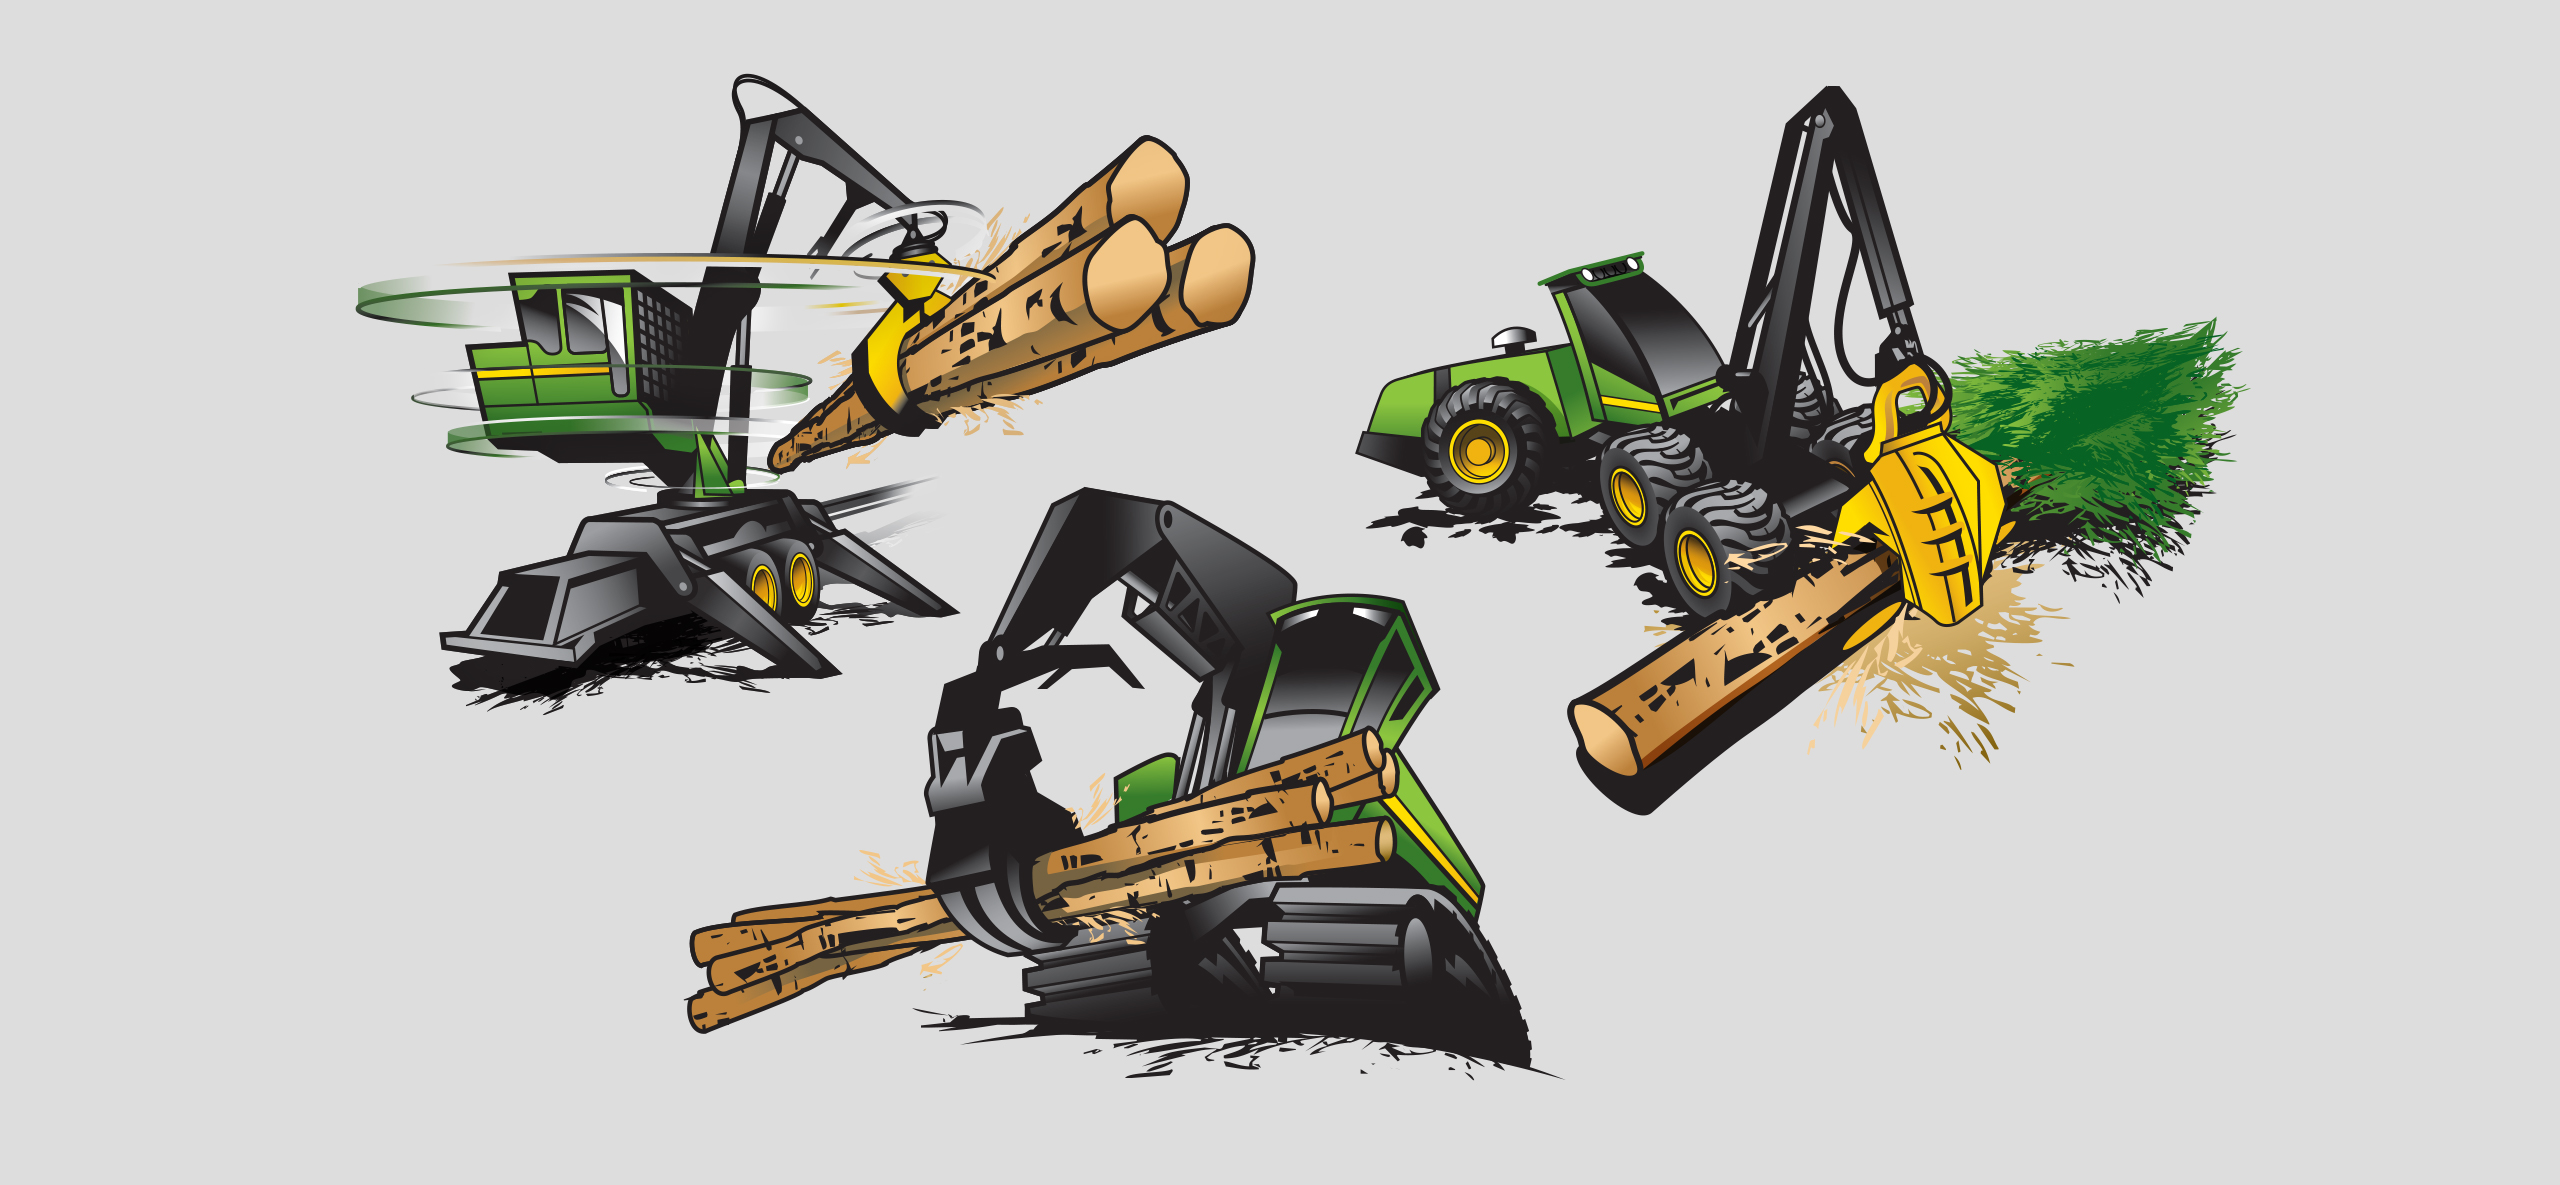 John Deere Construction and Forestry illustration